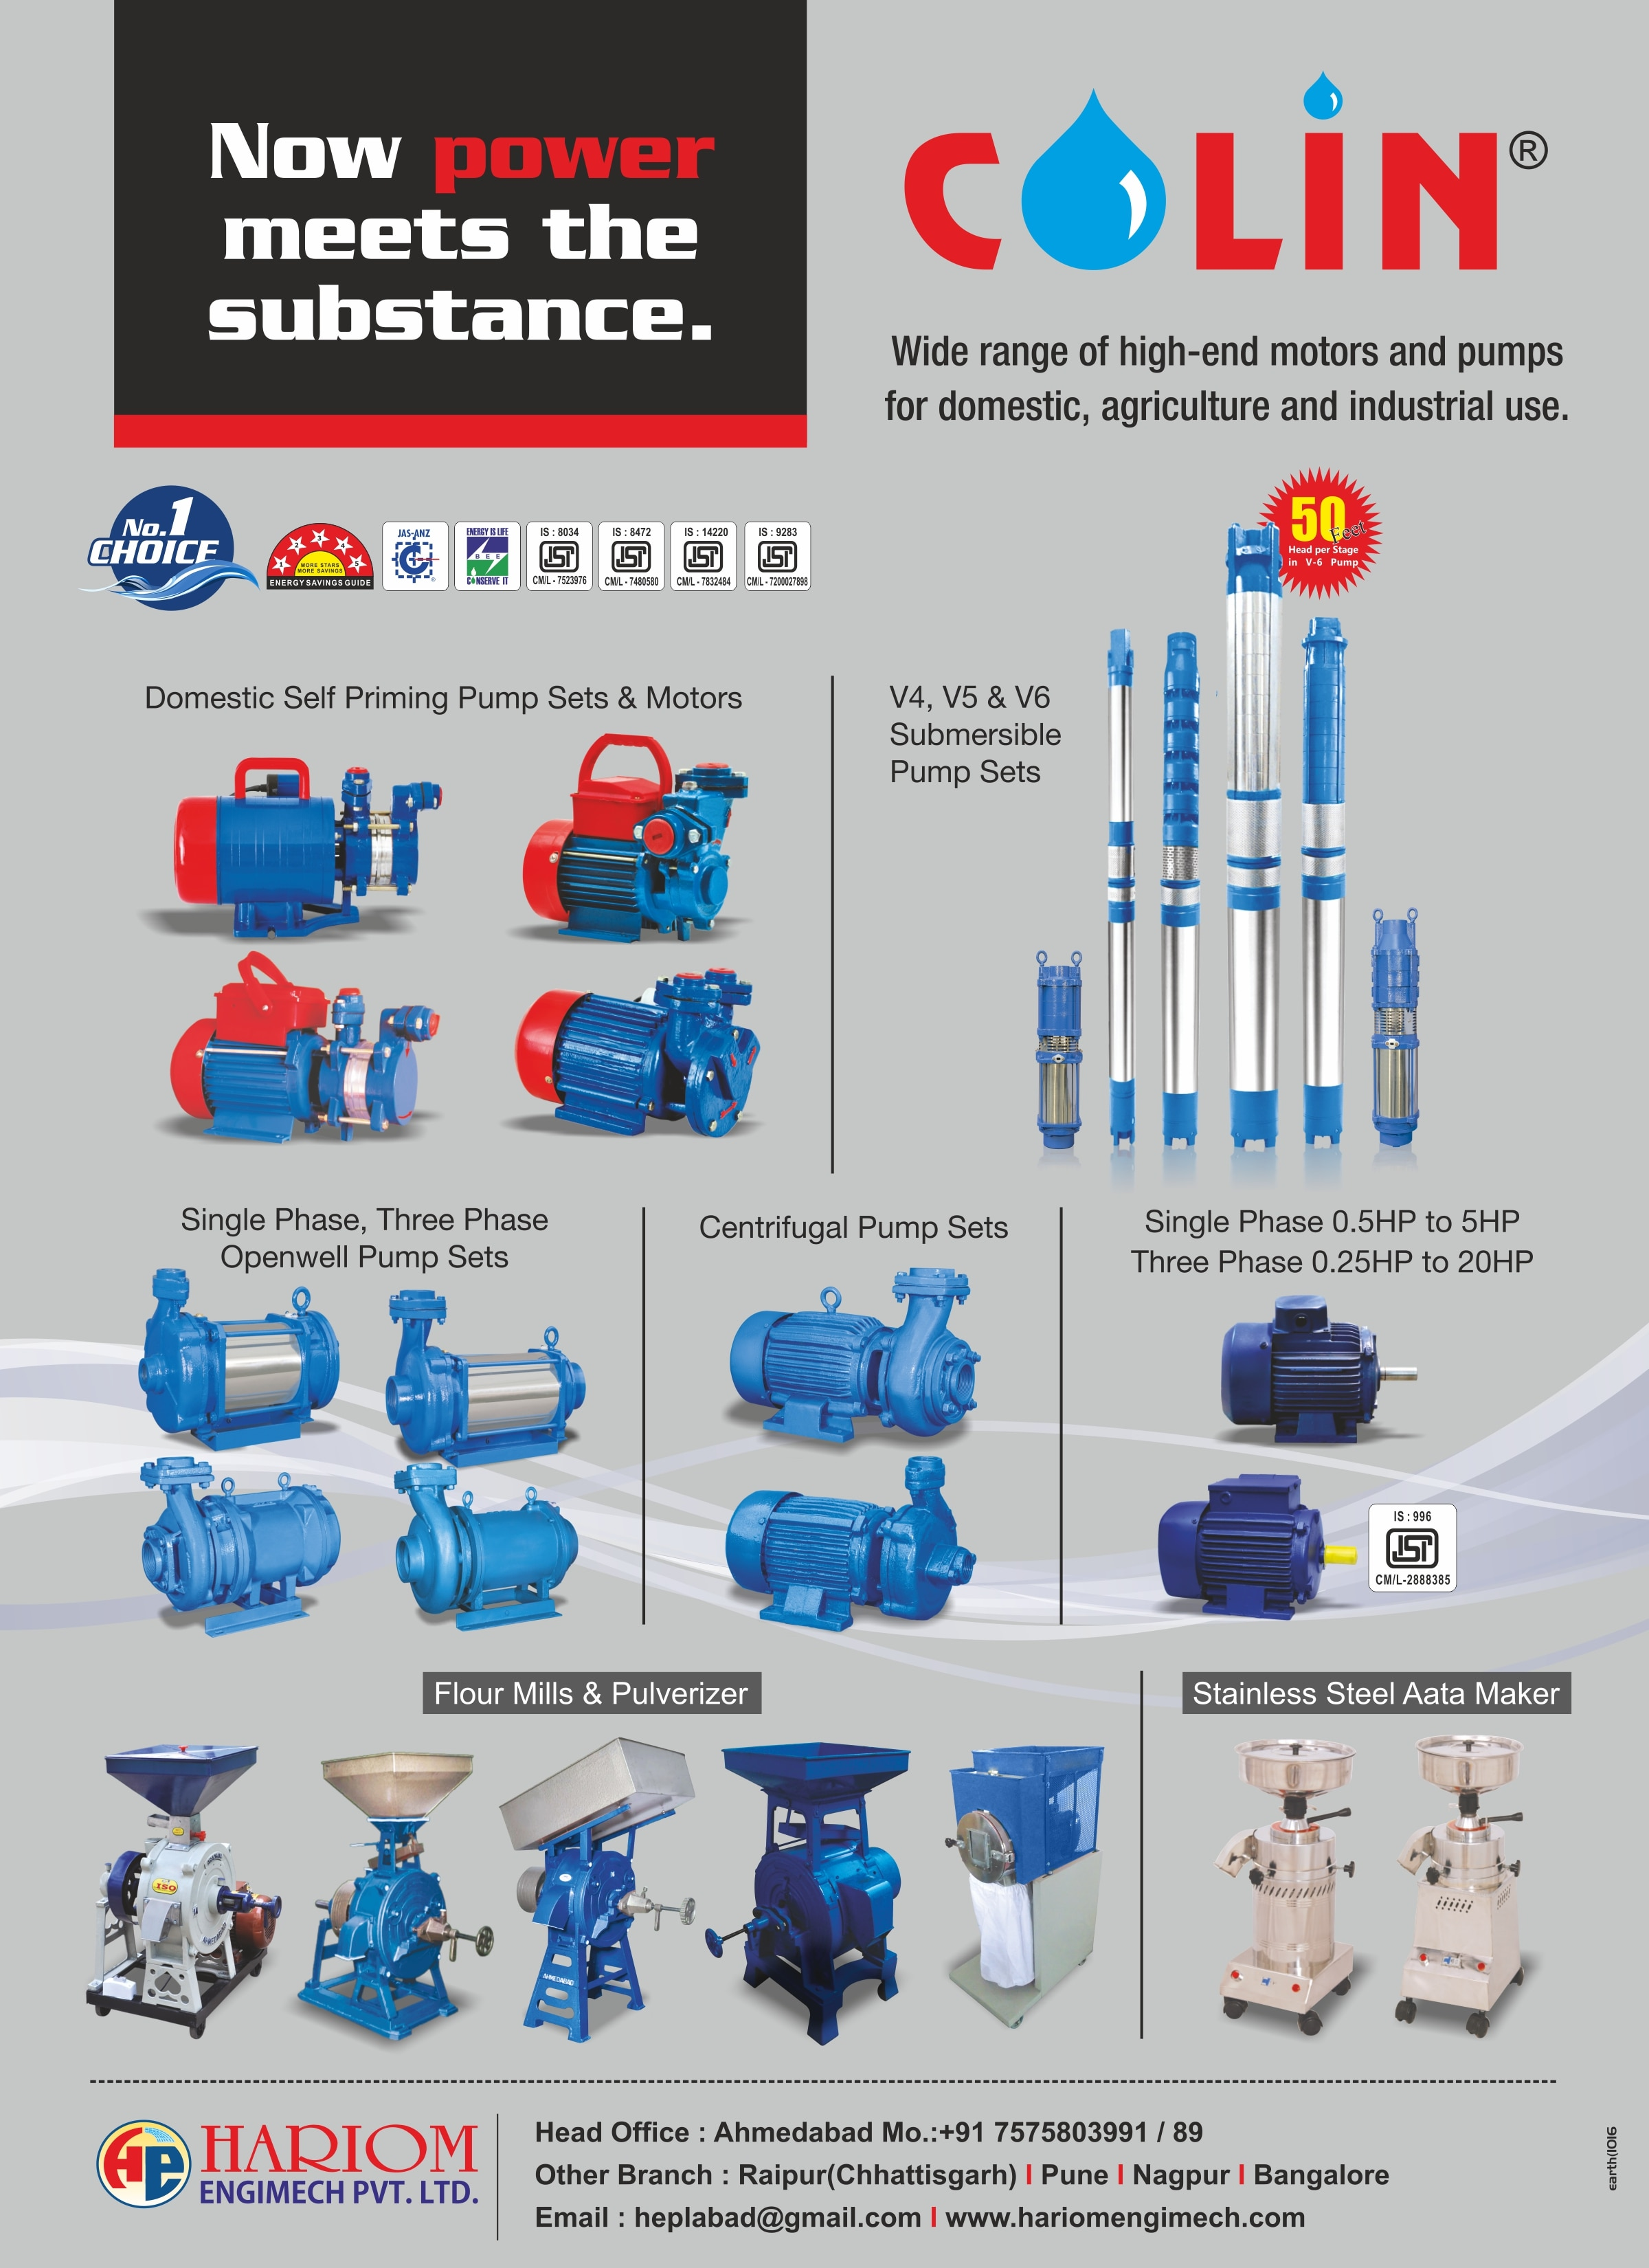 Hariom Engimech pvt ltd - Colin pumps Motors & all type of Flour Mill..  Make your life easy with Colin products.  For more call on 7575803991 or click bellow link,  http://www.hariomengimech.com/